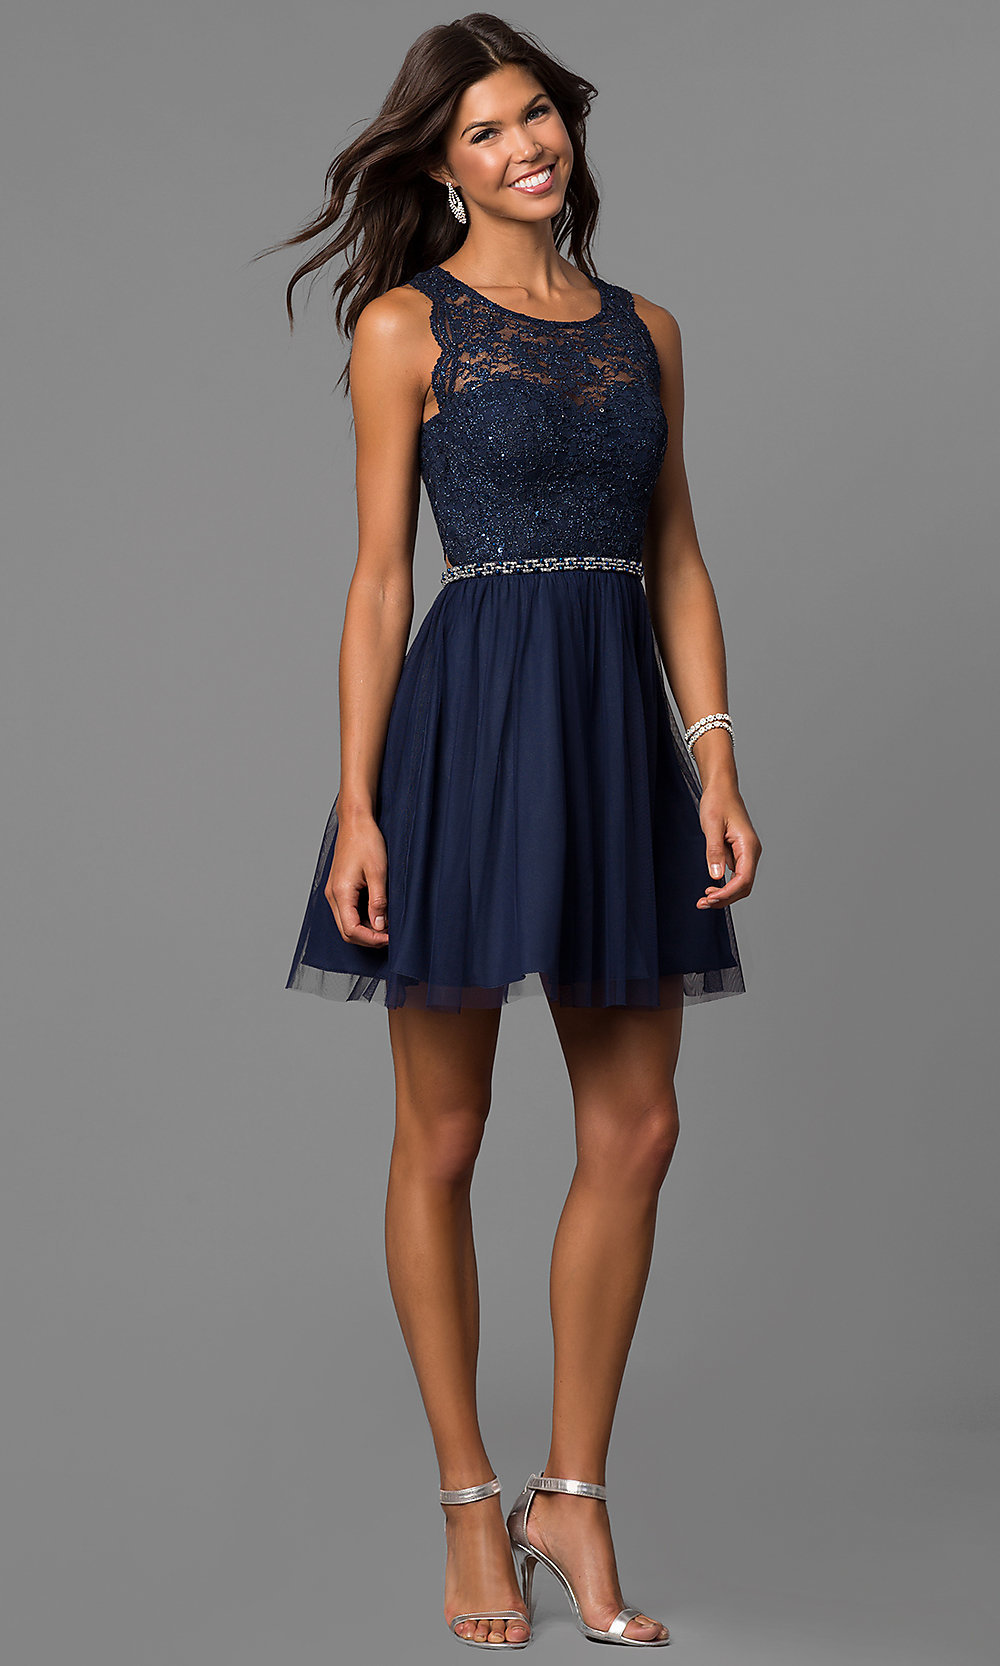 Short Navy Blue Homecoming Party Dress